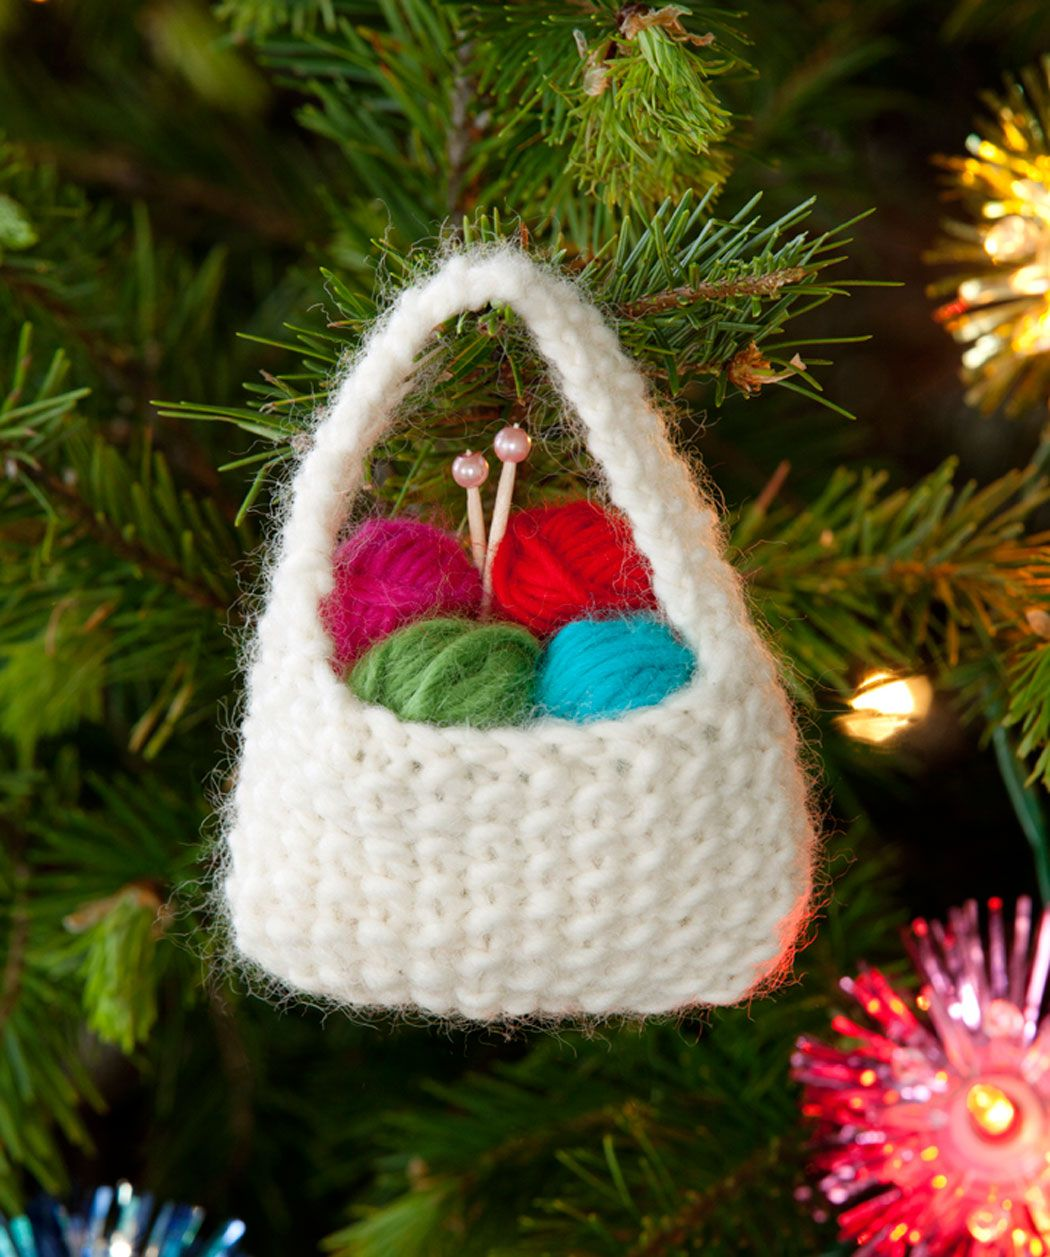 Yarn basket ornament knitting pattern i am not a knitter but yarn basket ornament free knitting pattern from red heart yarn incredibly fast project thats perfect as a gift topper or as the gift itself bankloansurffo Choice Image